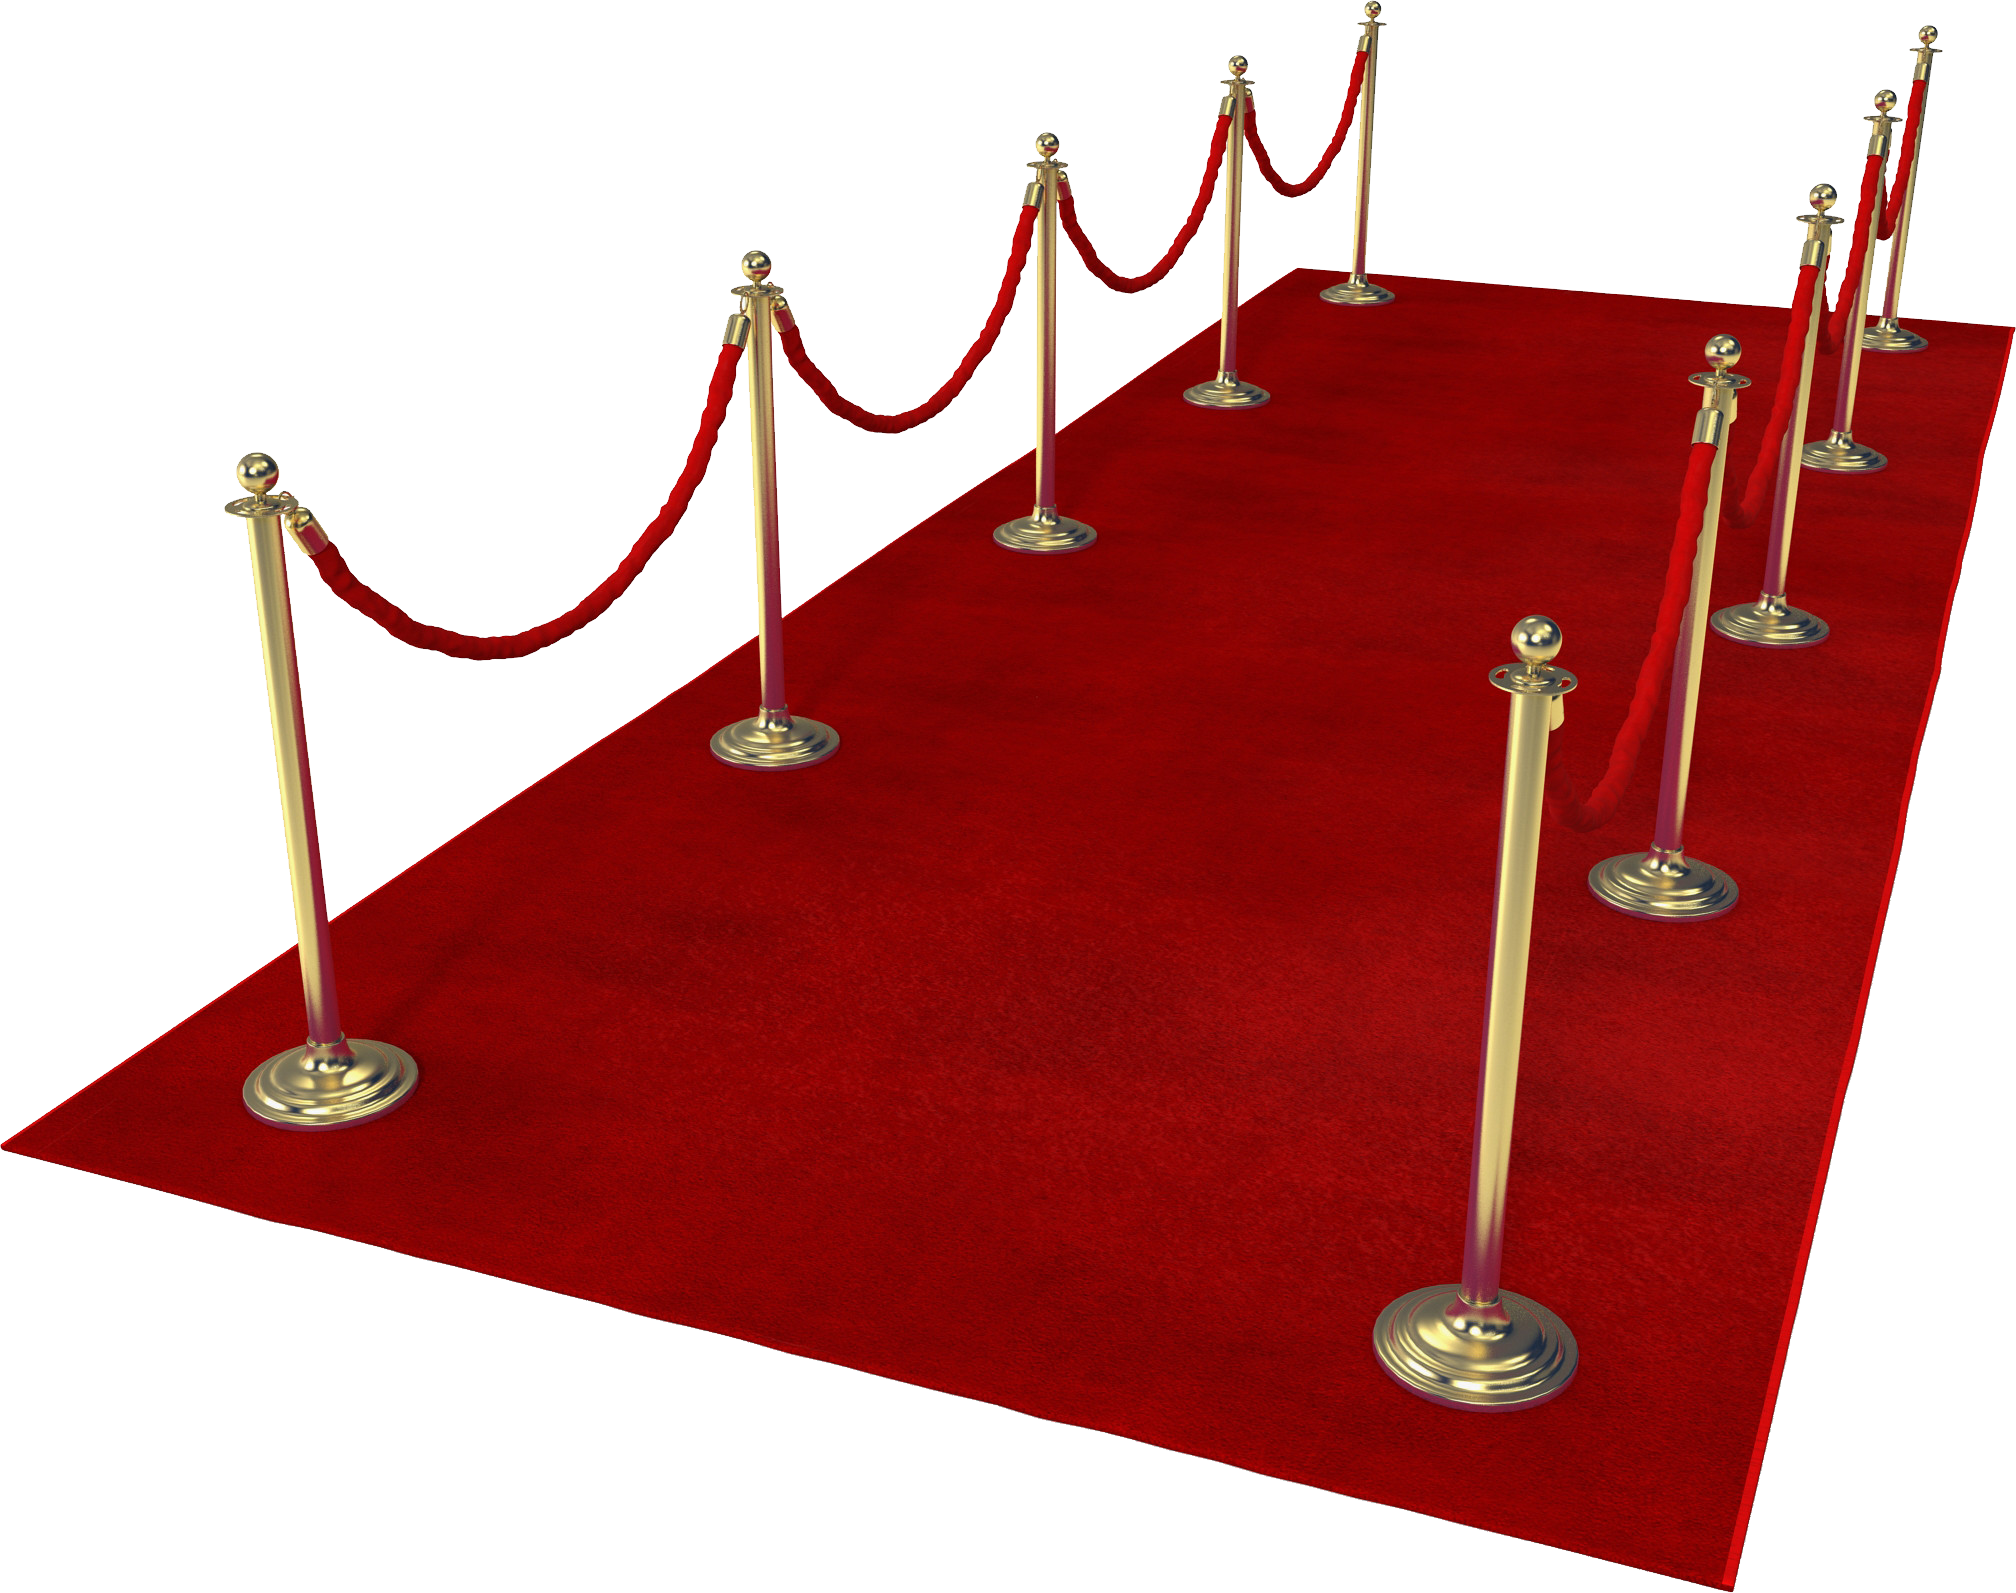 red carpet background png #27271